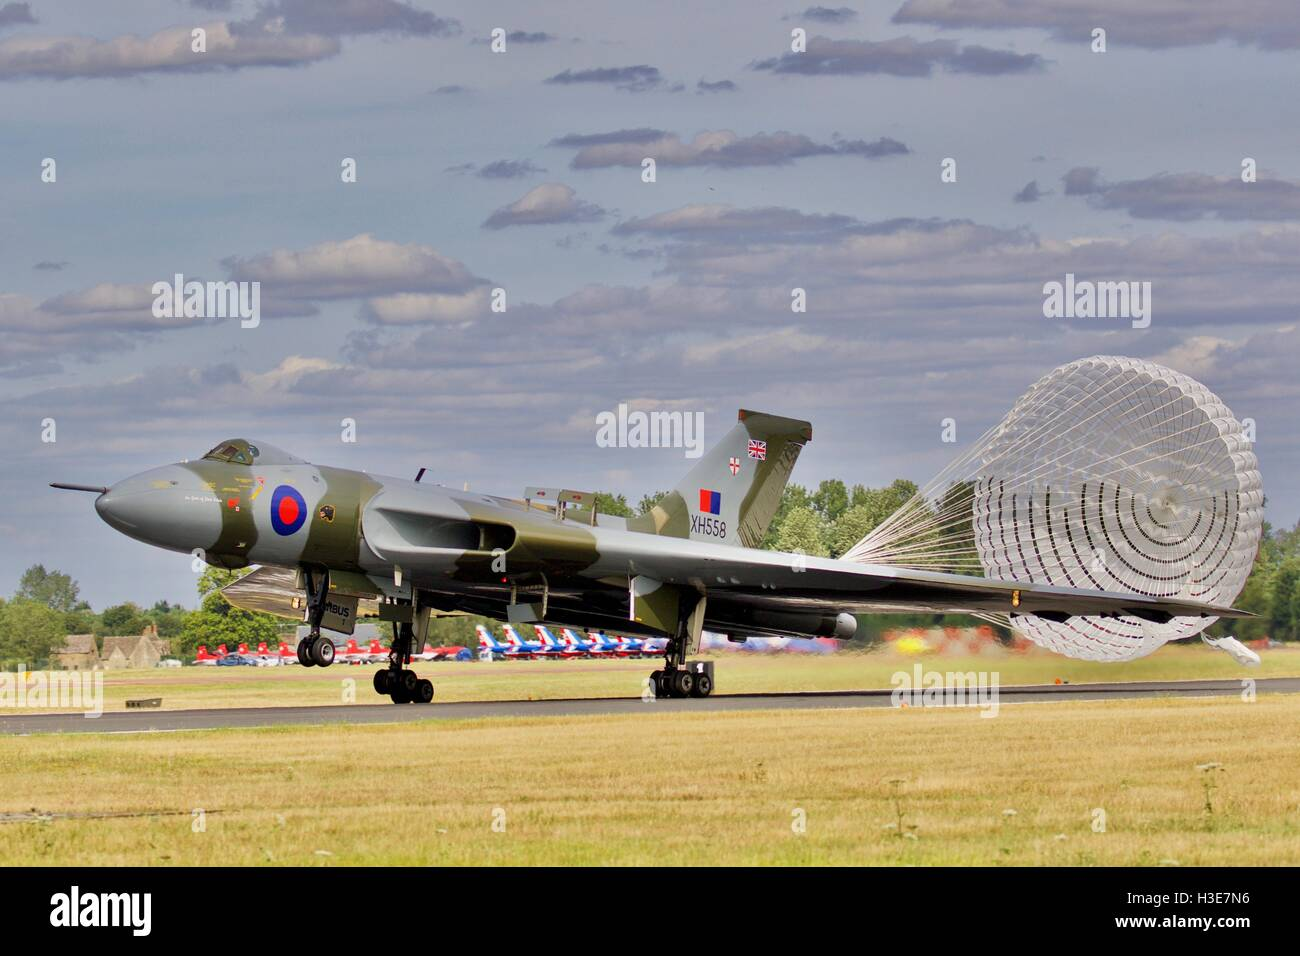 Avro Vulcan B2 bomber with its deceleration parachute deployed - Stock Image